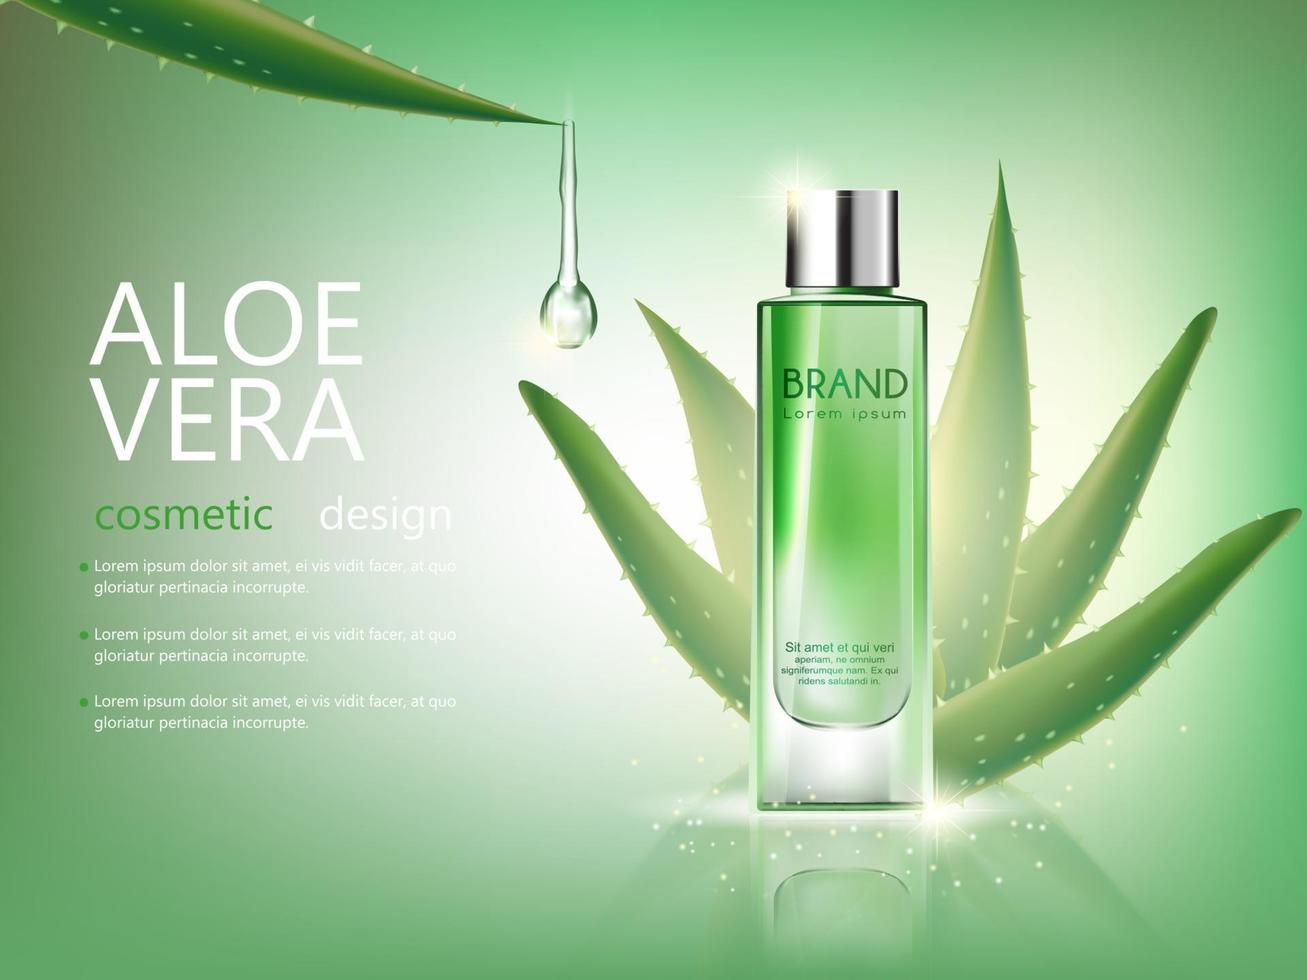 vector bottle aloe vera cosmetic mockup on green background, with your brand, ready for print ads or magazine design. Transparent and shine, realistic 3d style